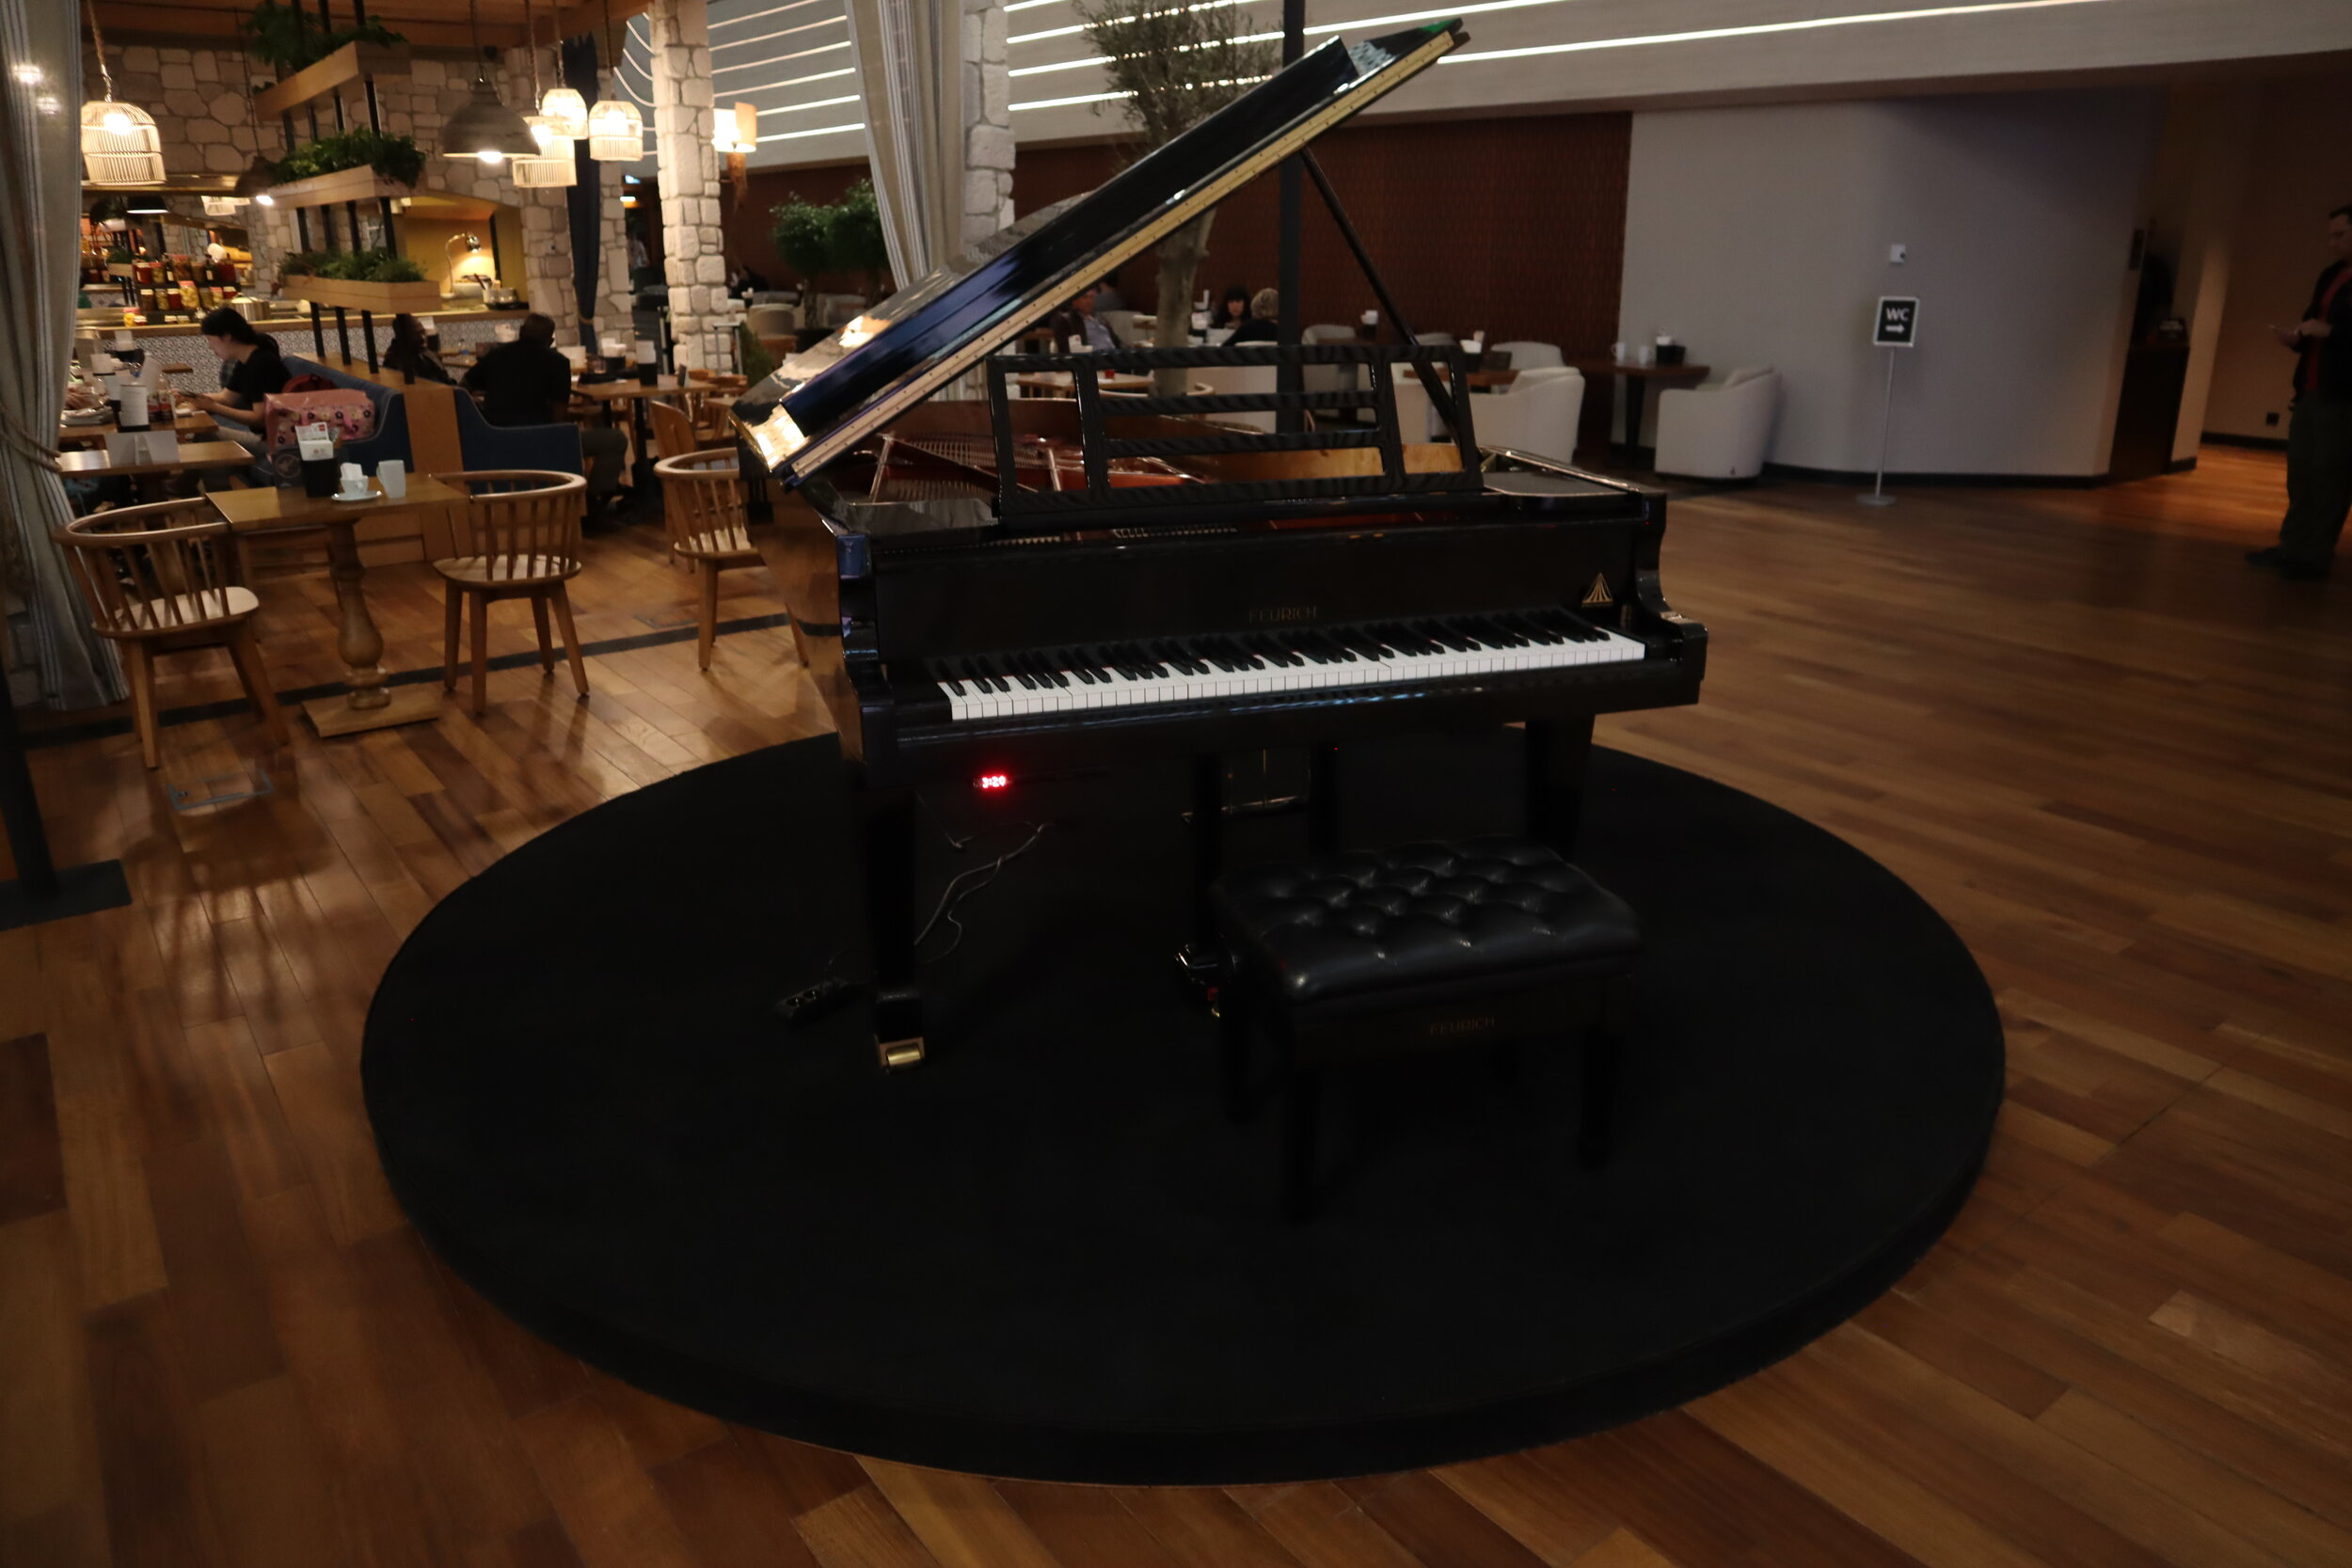 Turkish Airlines Business Lounge Istanbul – Grand piano